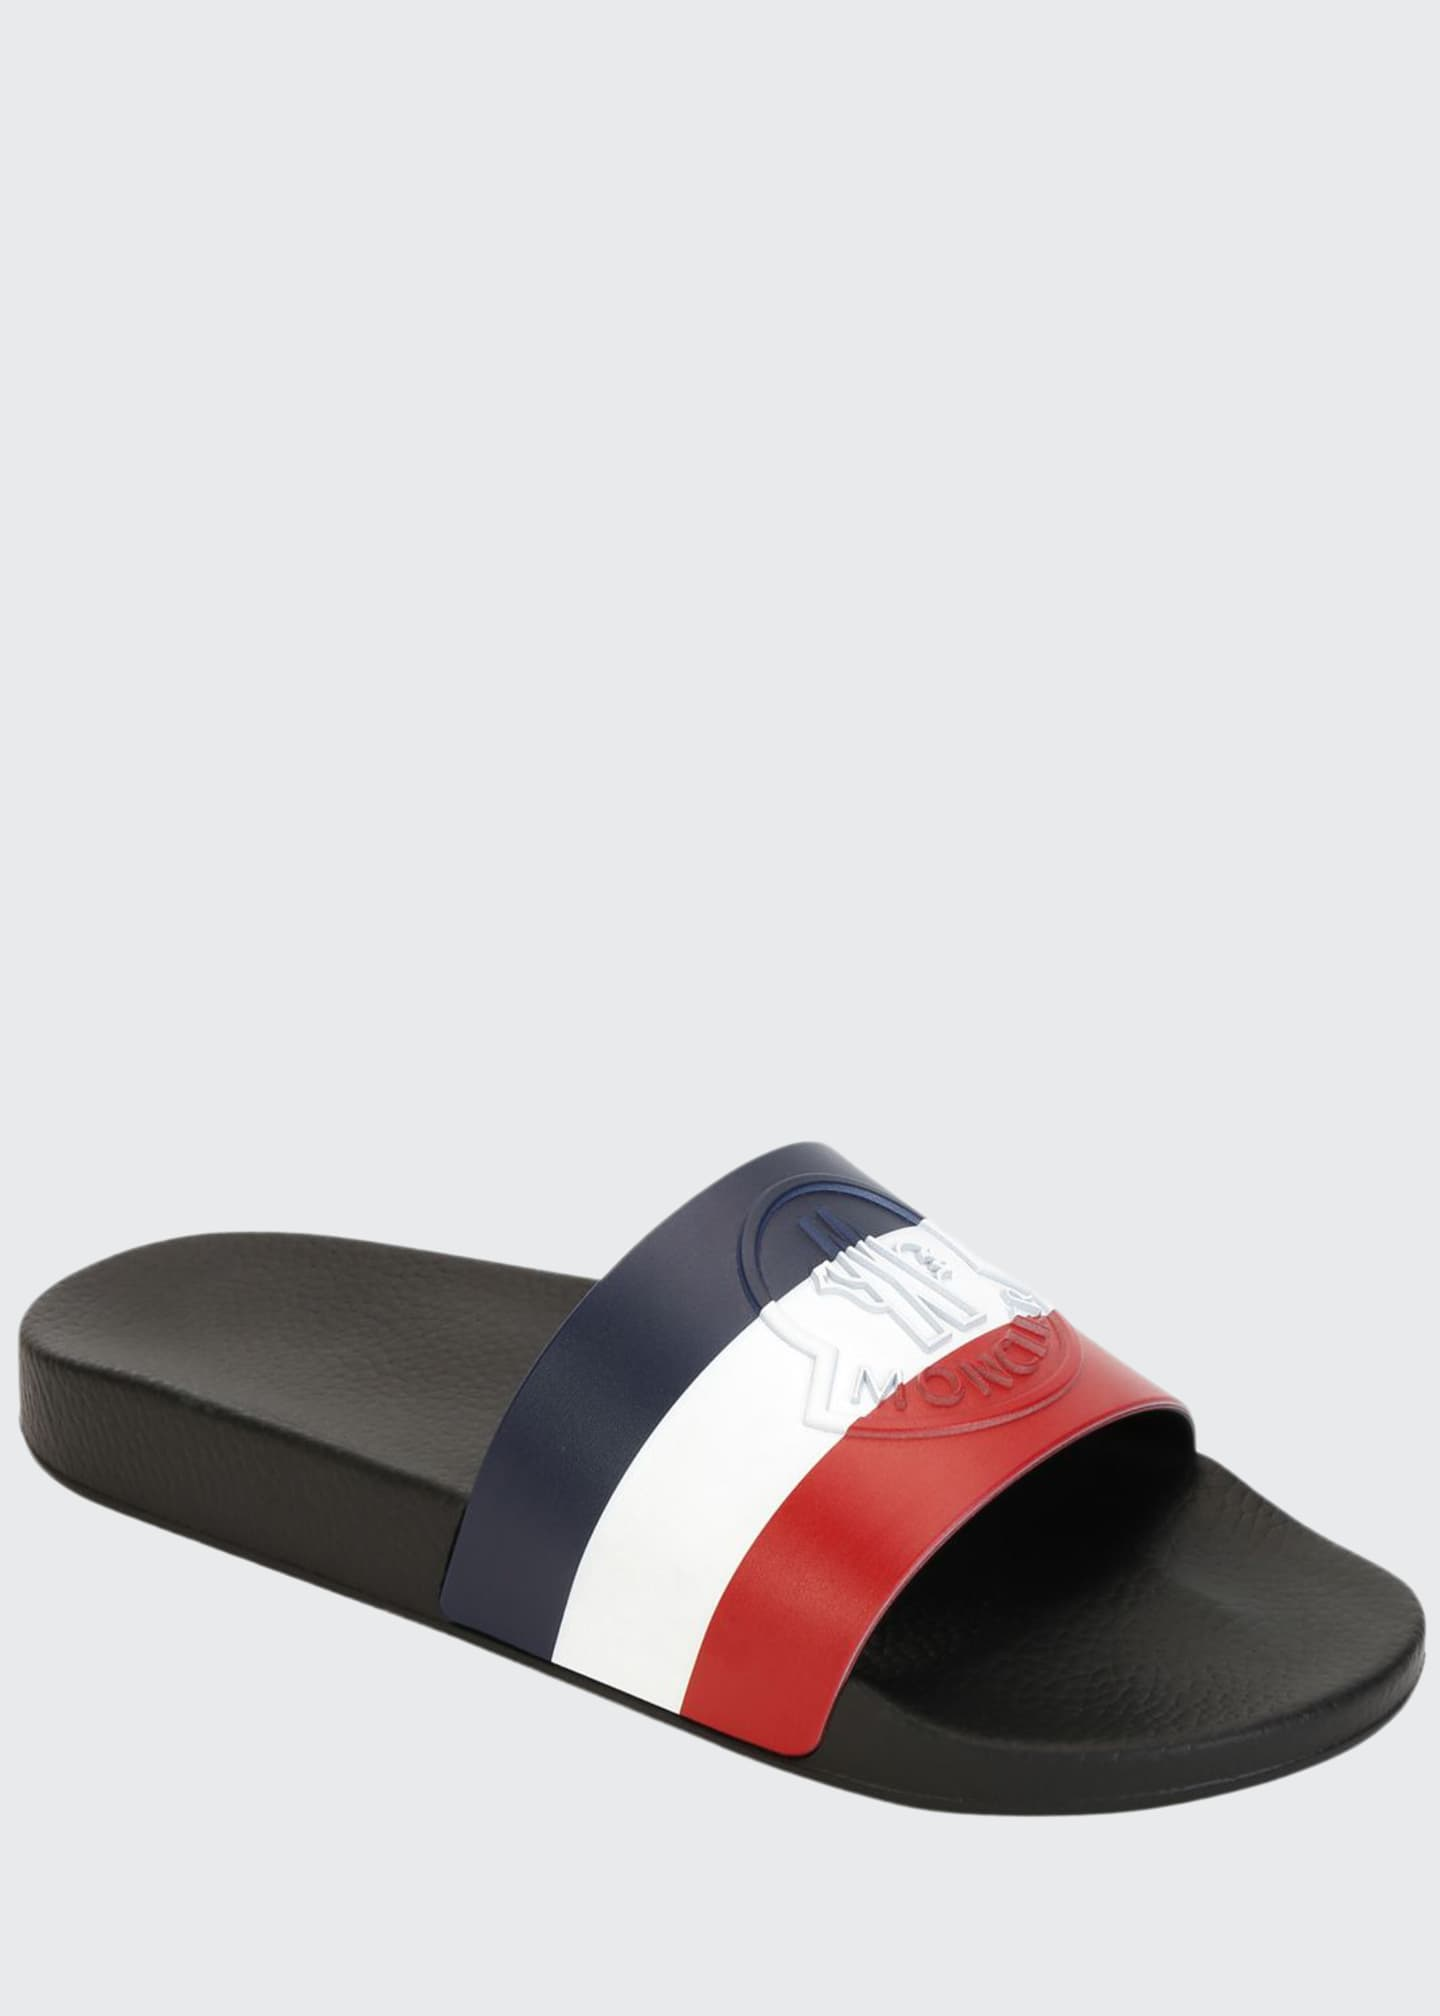 Moncler Men's Pool Slide Sandals